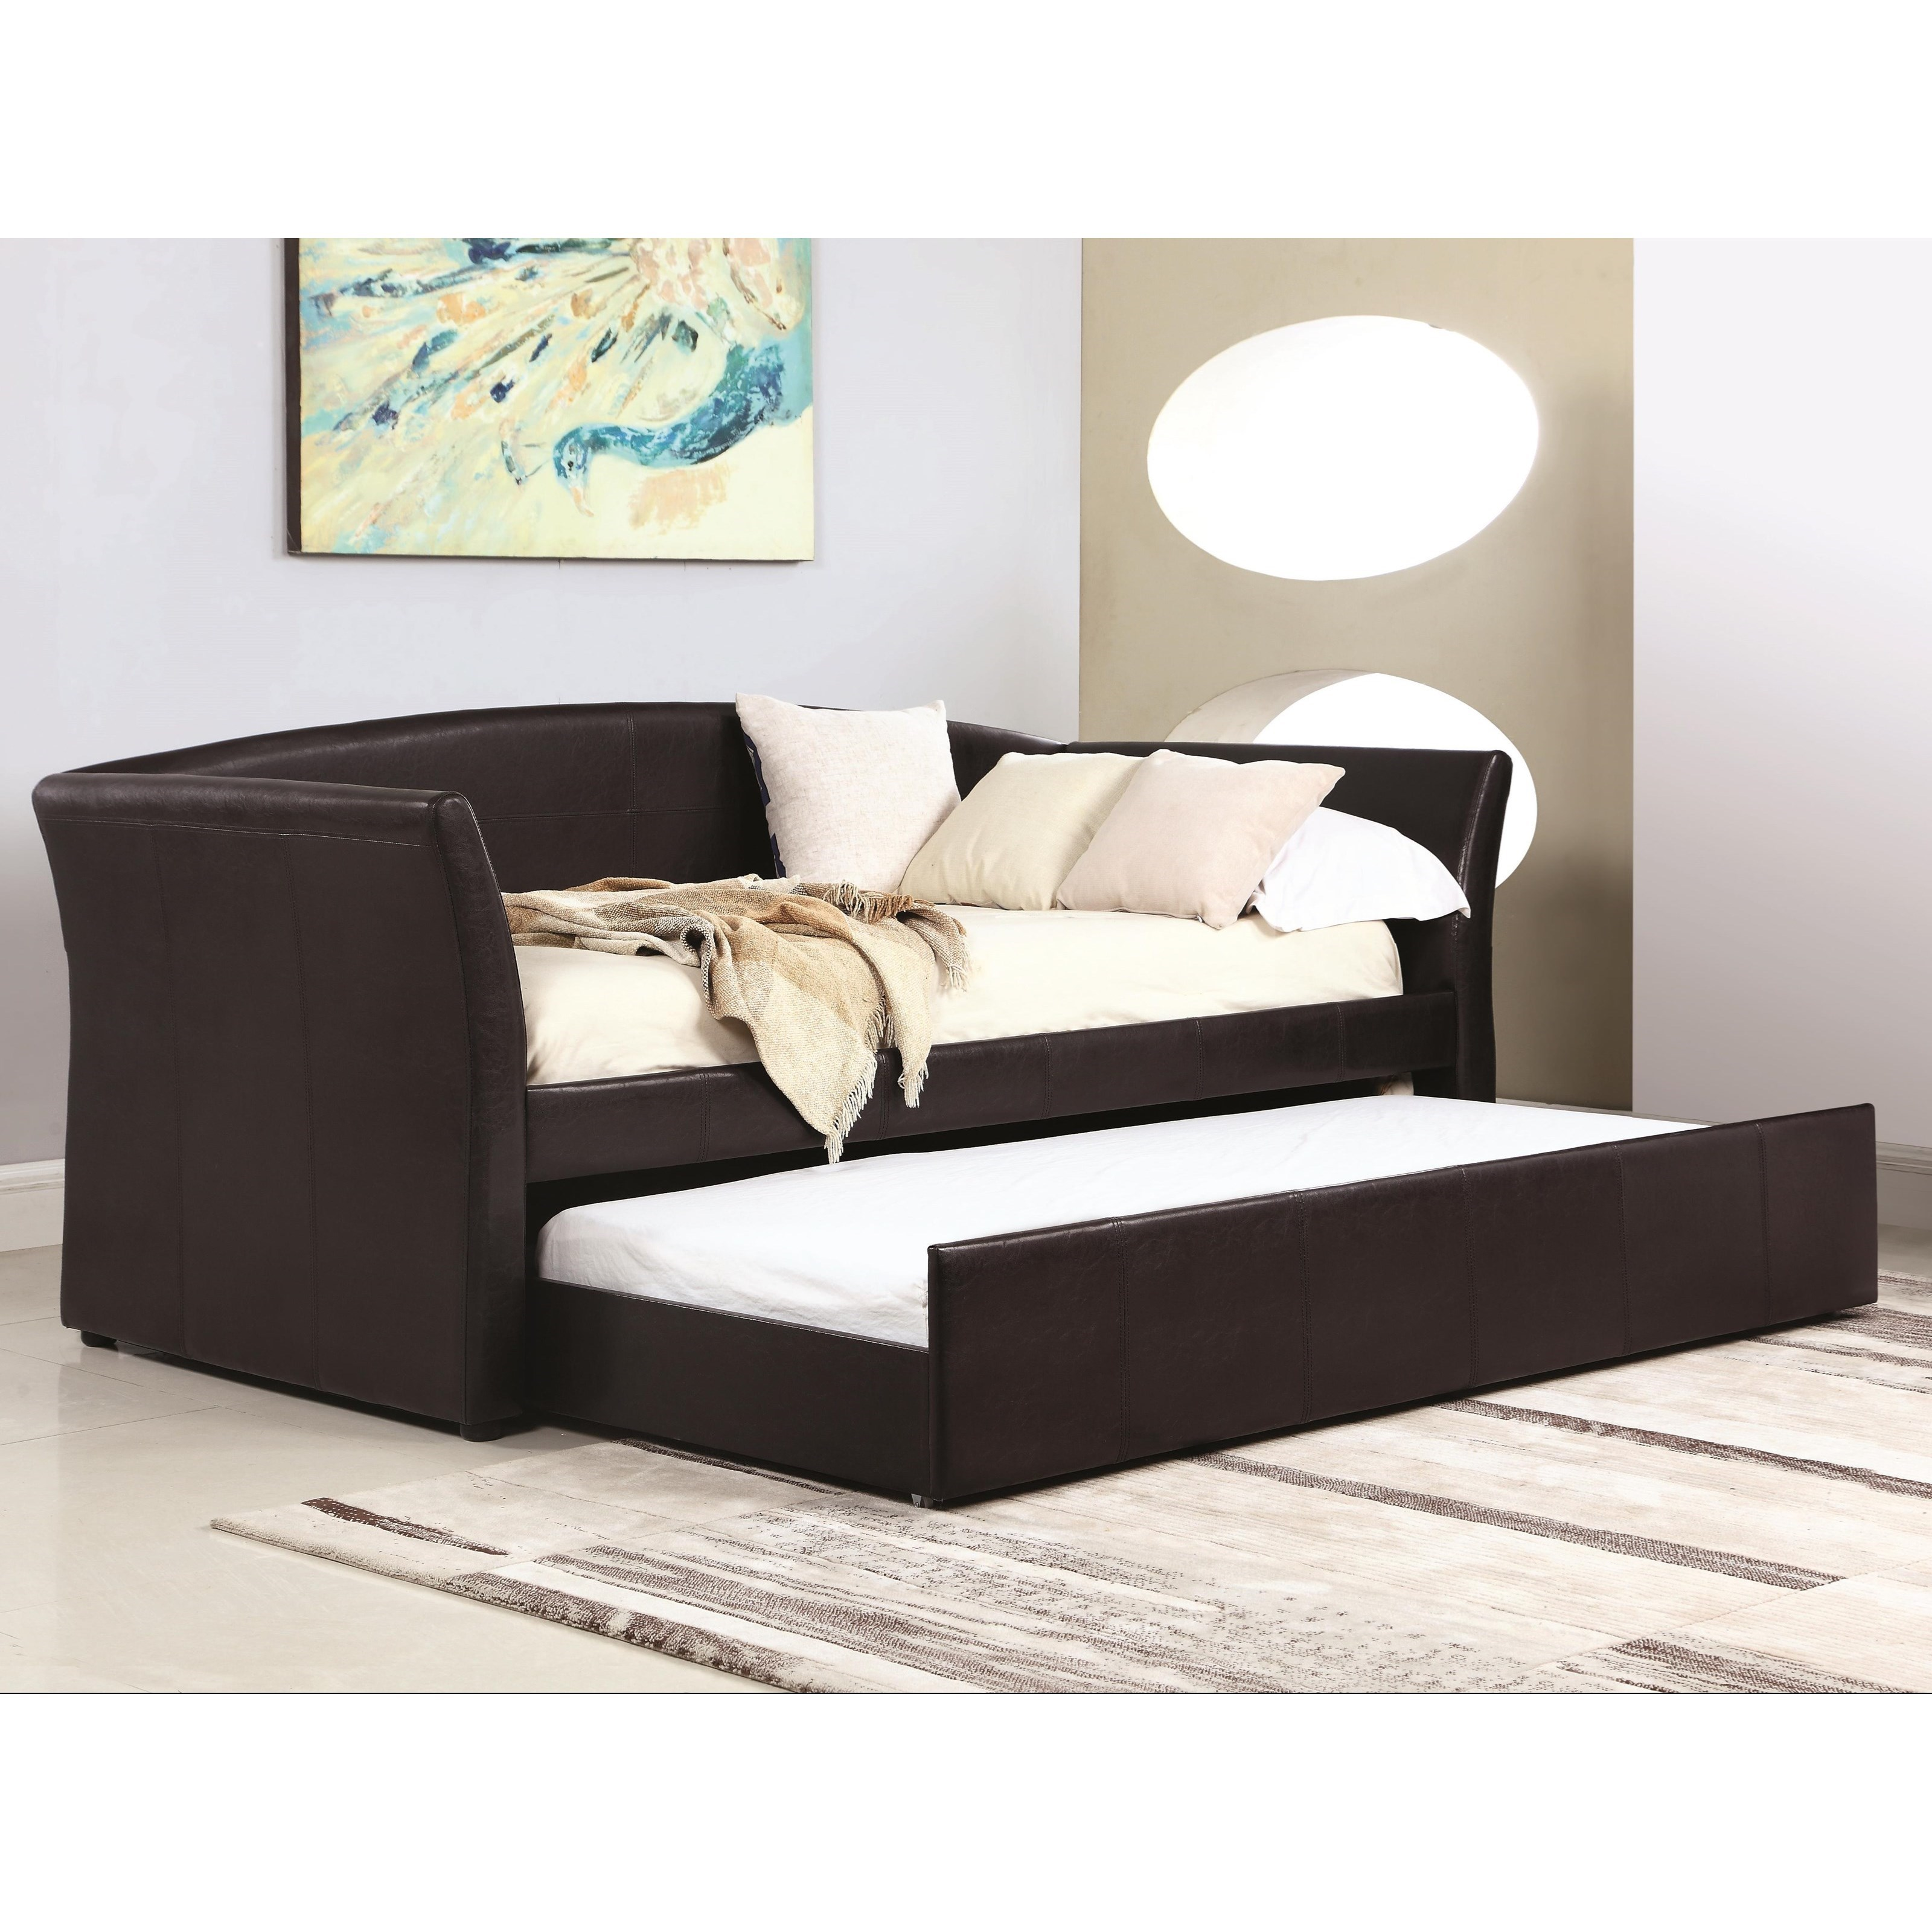 coaster daybeds by coaster upholstered daybed with trundle rife 39 s home furniture daybeds. Black Bedroom Furniture Sets. Home Design Ideas